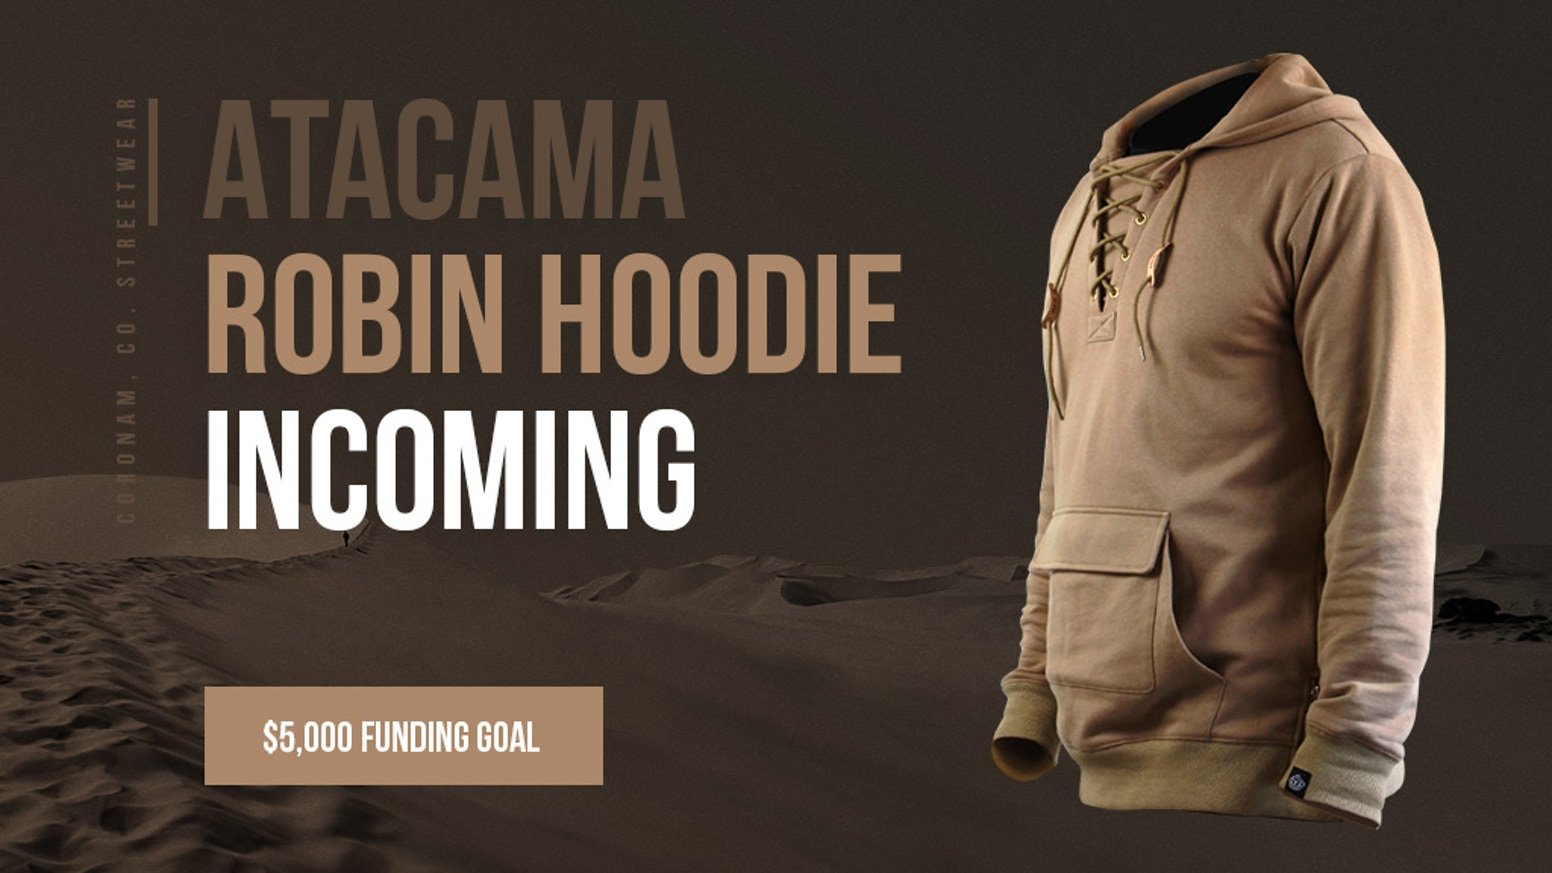 Bringing together modern street fashion and past era clothing styles, the Robin Hoodie is the next step in the fashion timeline.